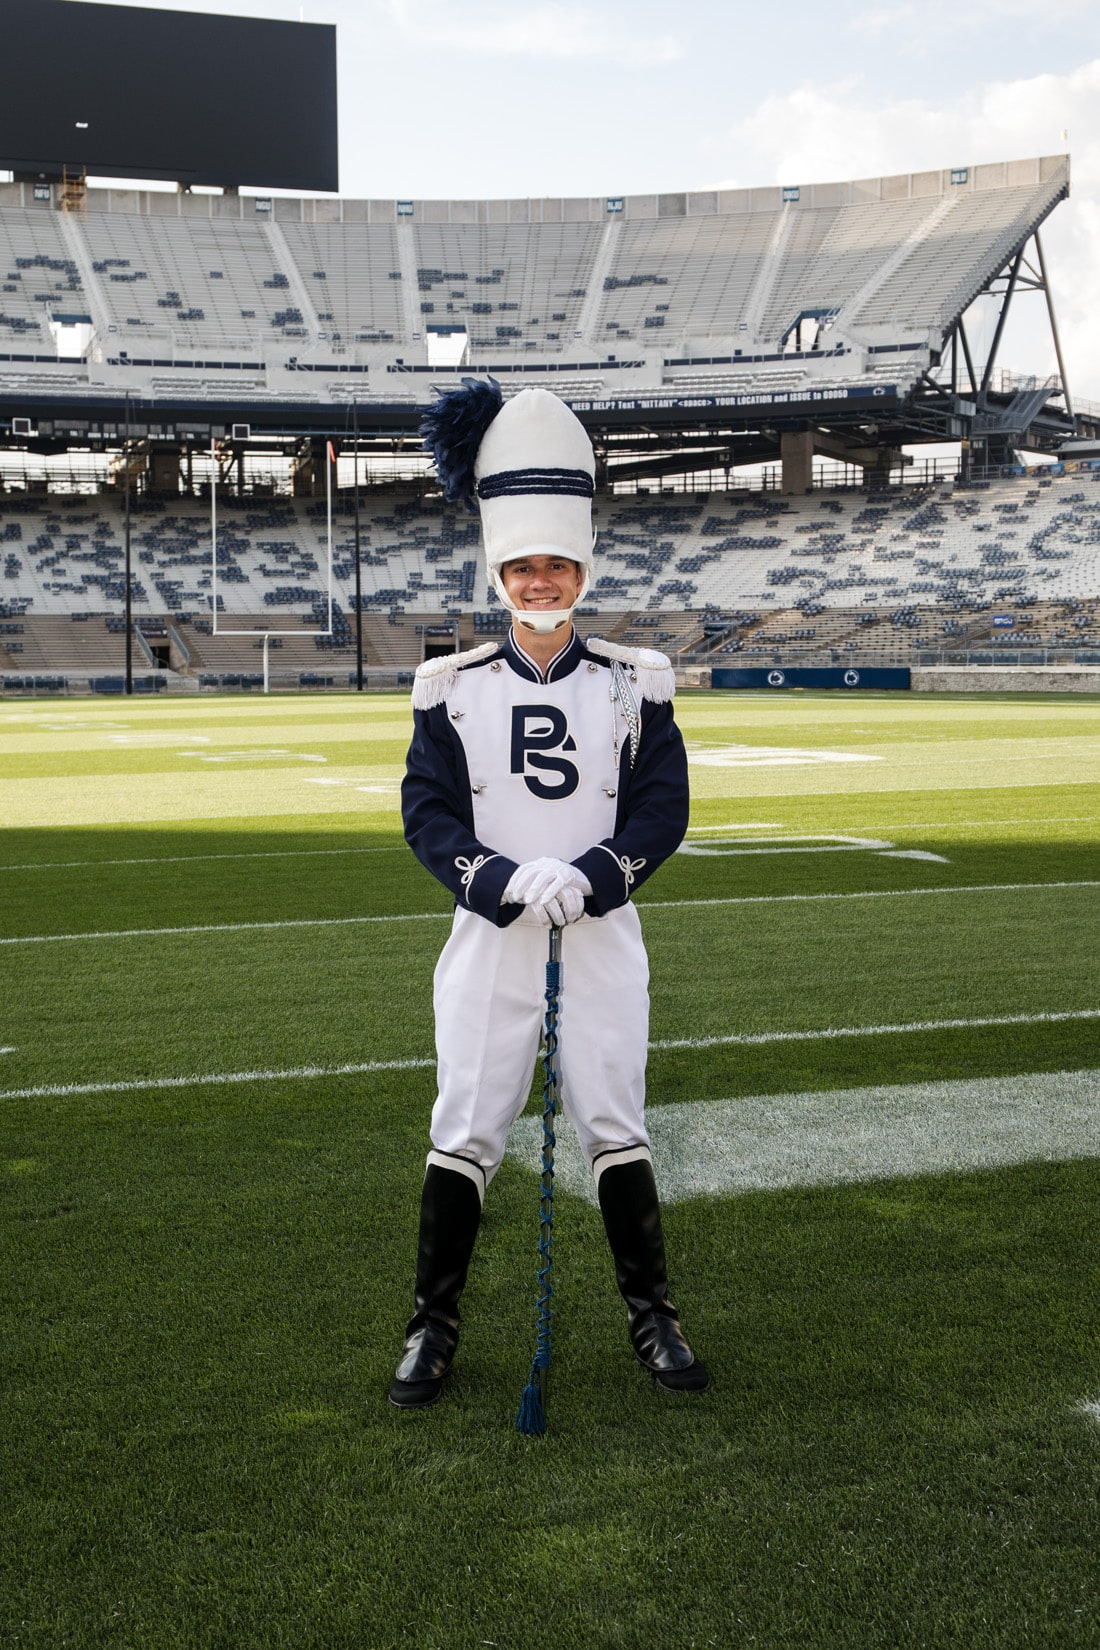 Penn State Blue Band, Beaver Stadium, State College, PA - Bob Lambert Photography